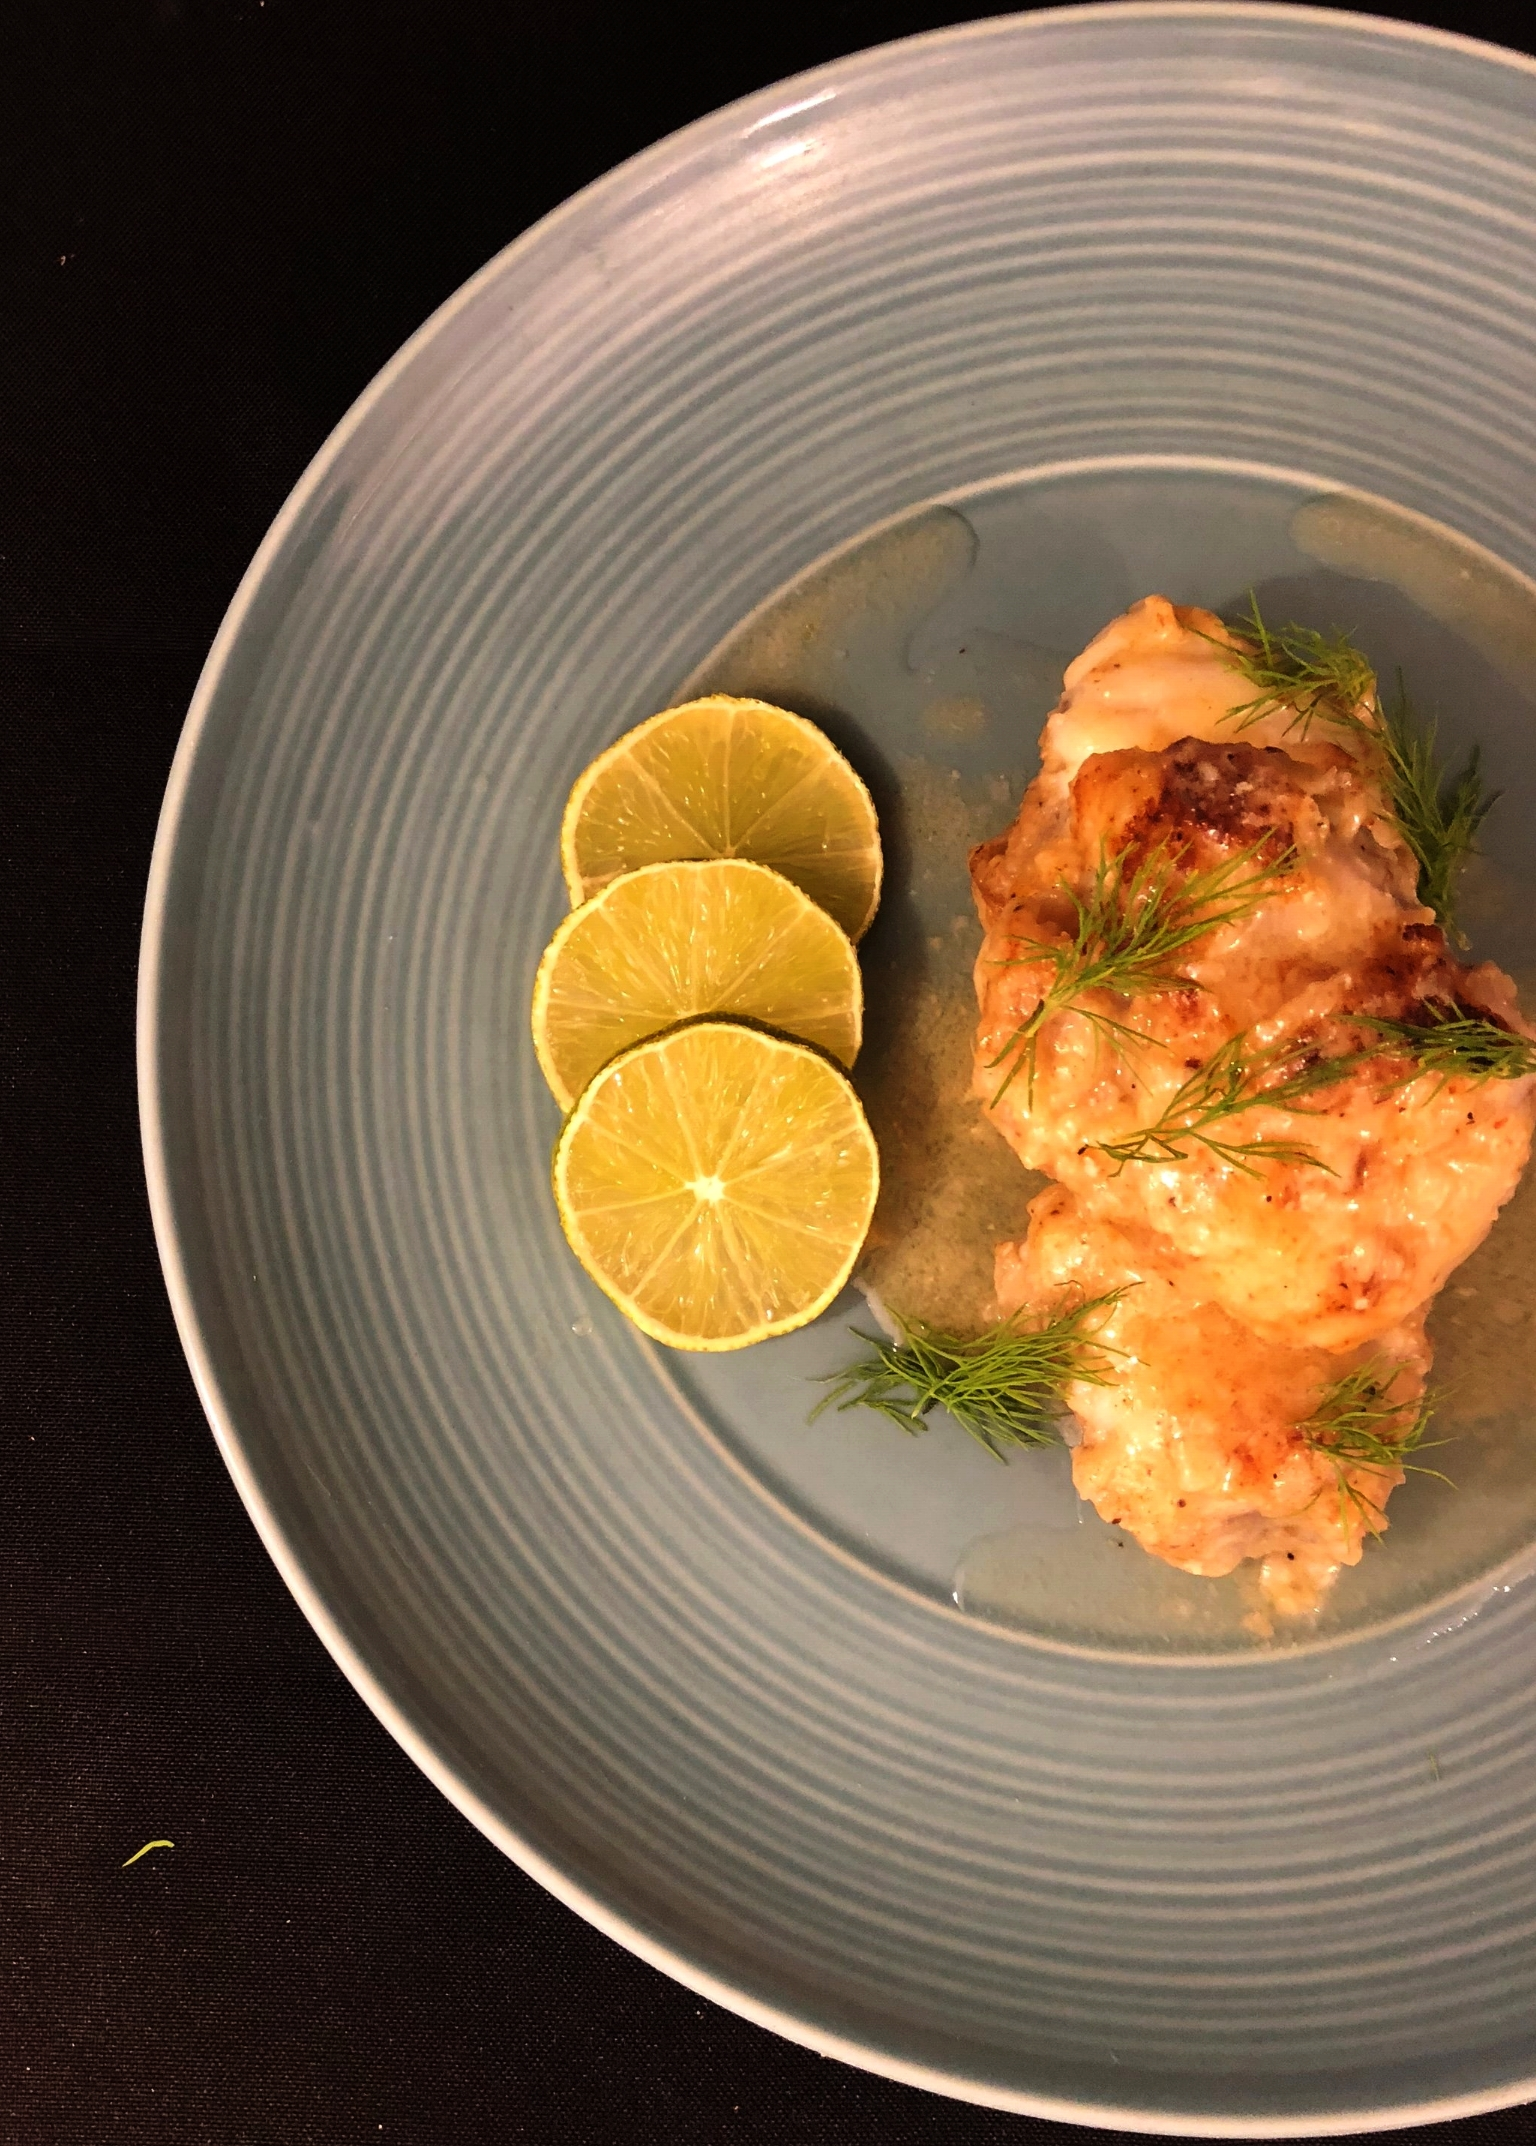 Monk Fish - With Spice the Sea